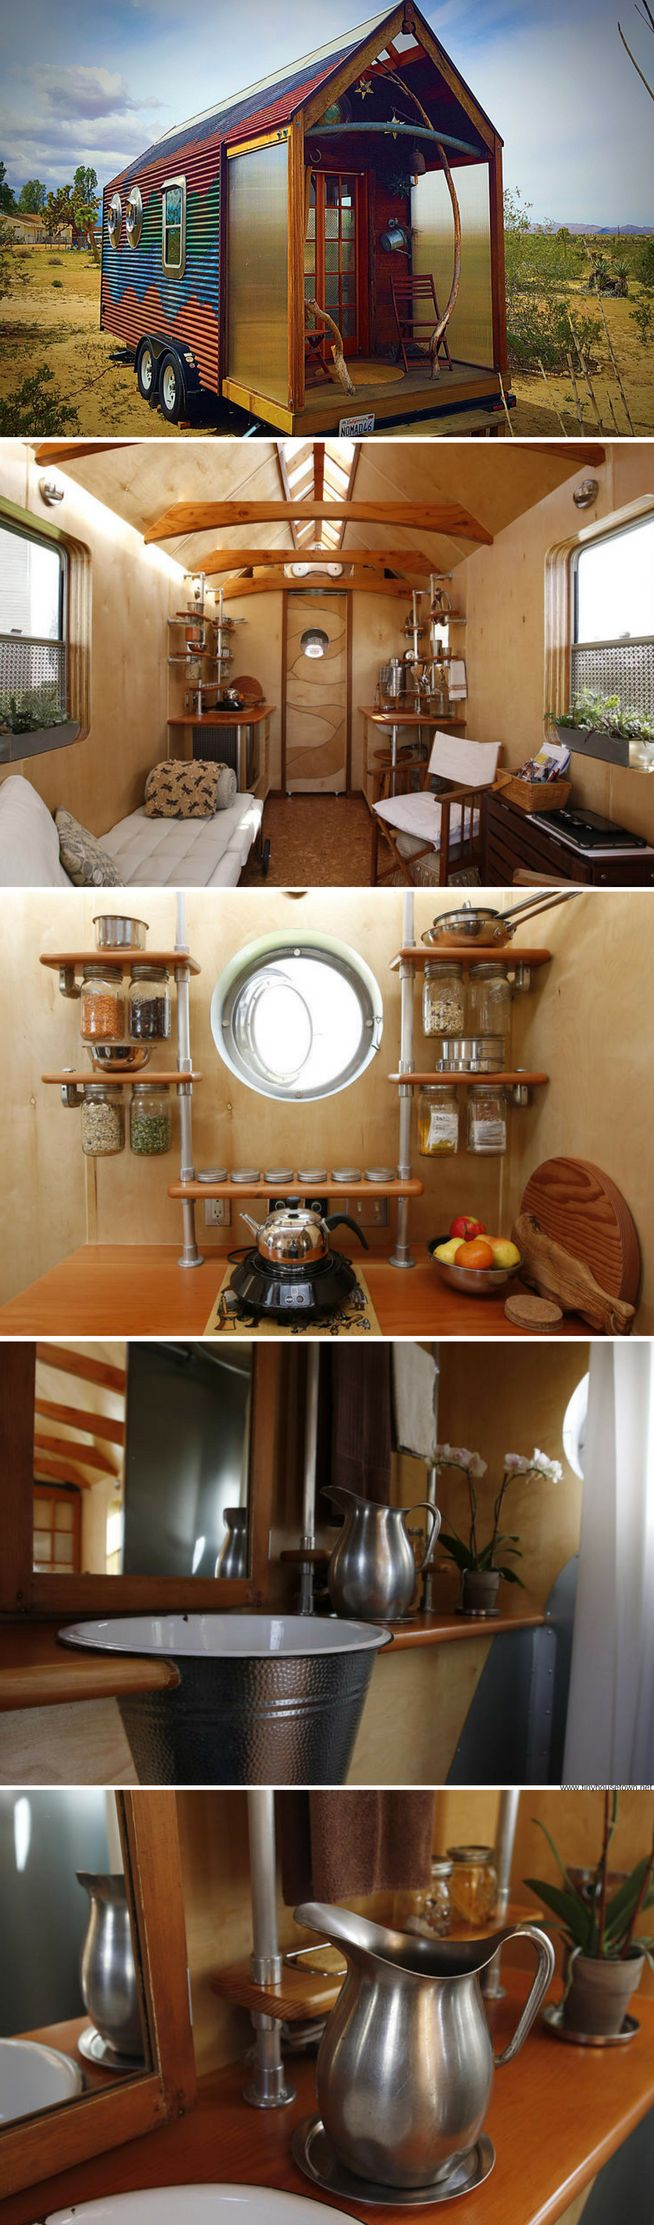 NOMAD: a 100 sq ft tiny house made from found objects and recycled wood